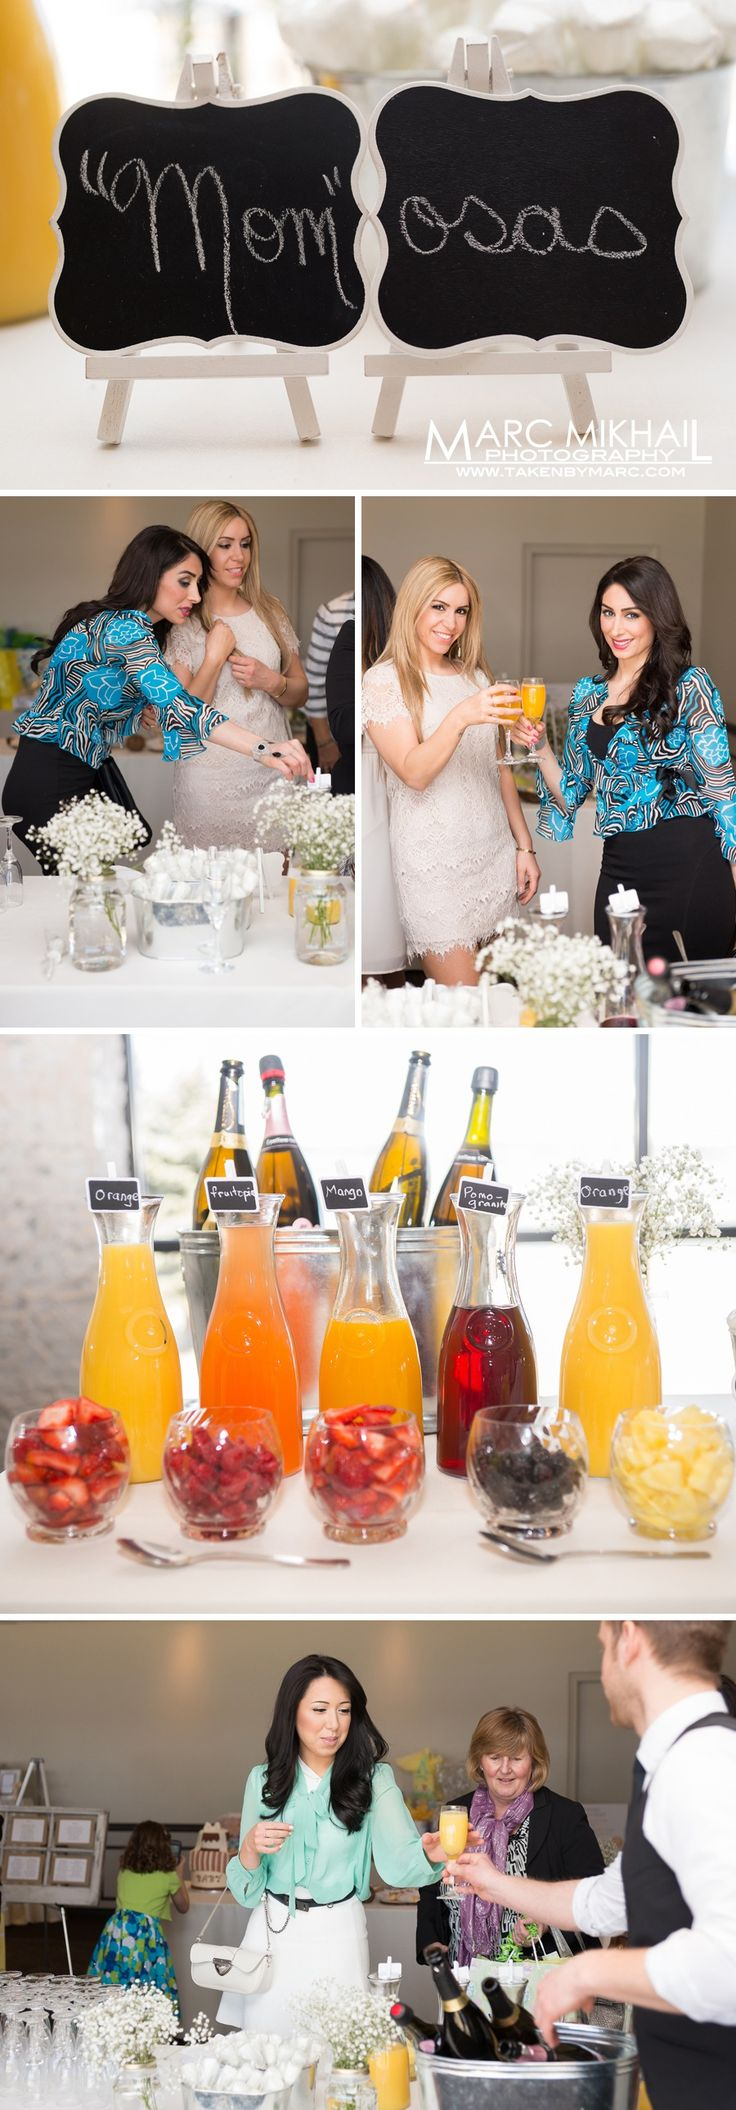 Marc Mikhail Photography | A Spring Baby Shower for Summer | http://www.takenbymarc.com